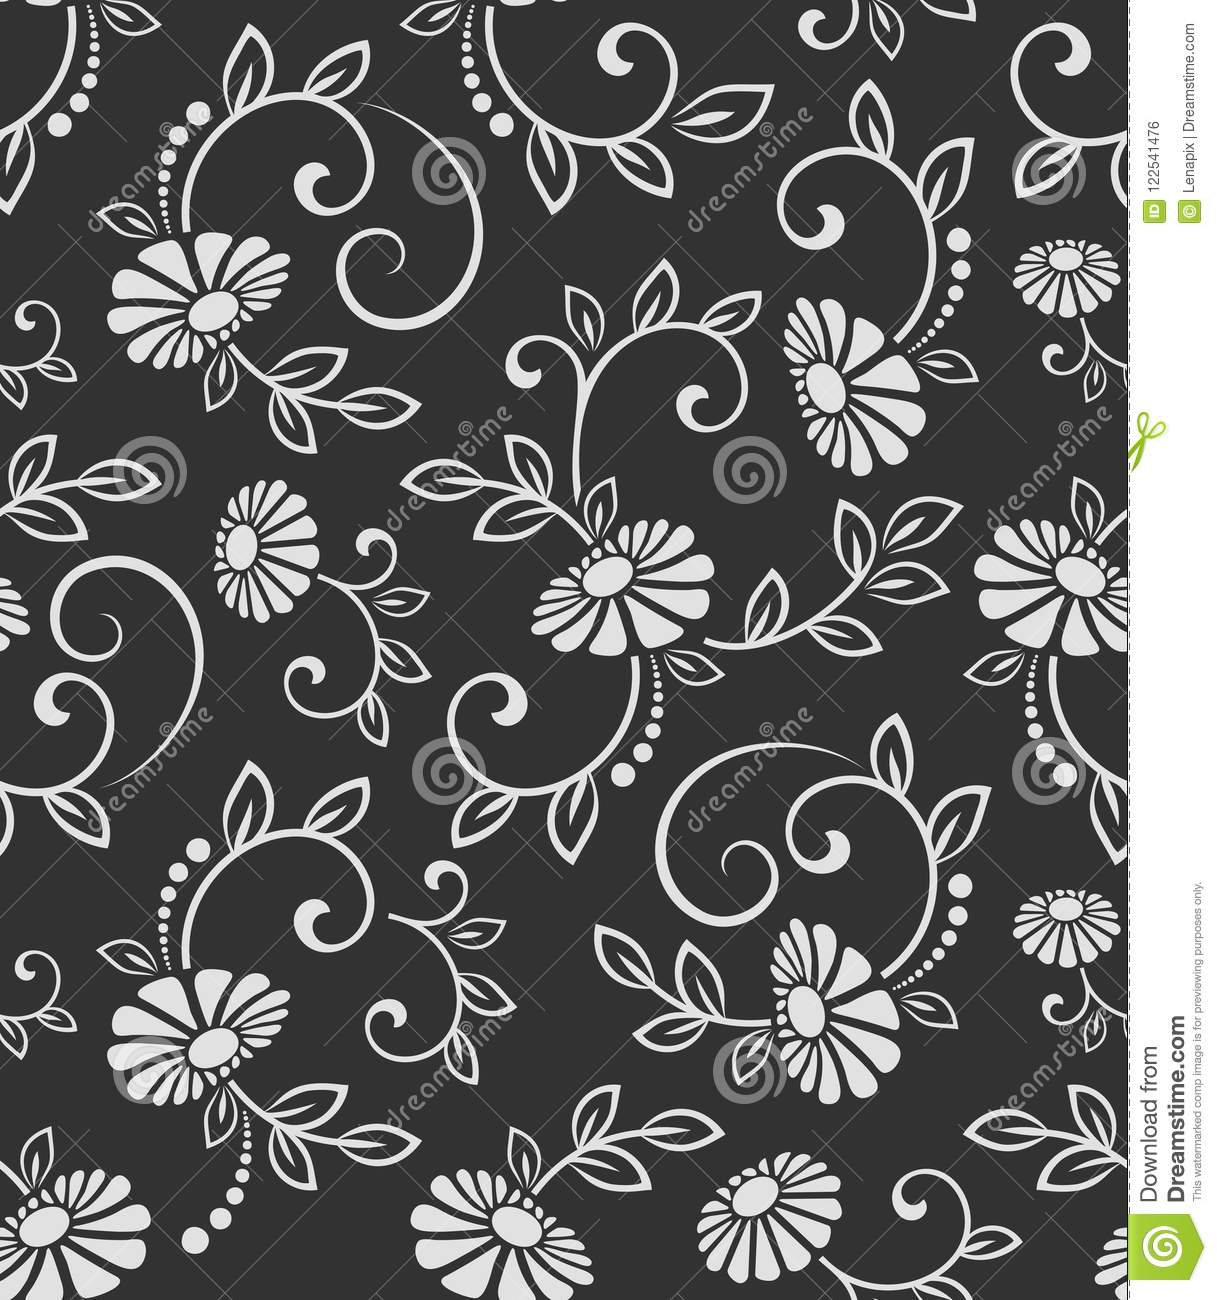 Seamless black and white flower vector pattern seamless wrapping paper textile or upholstery flower print